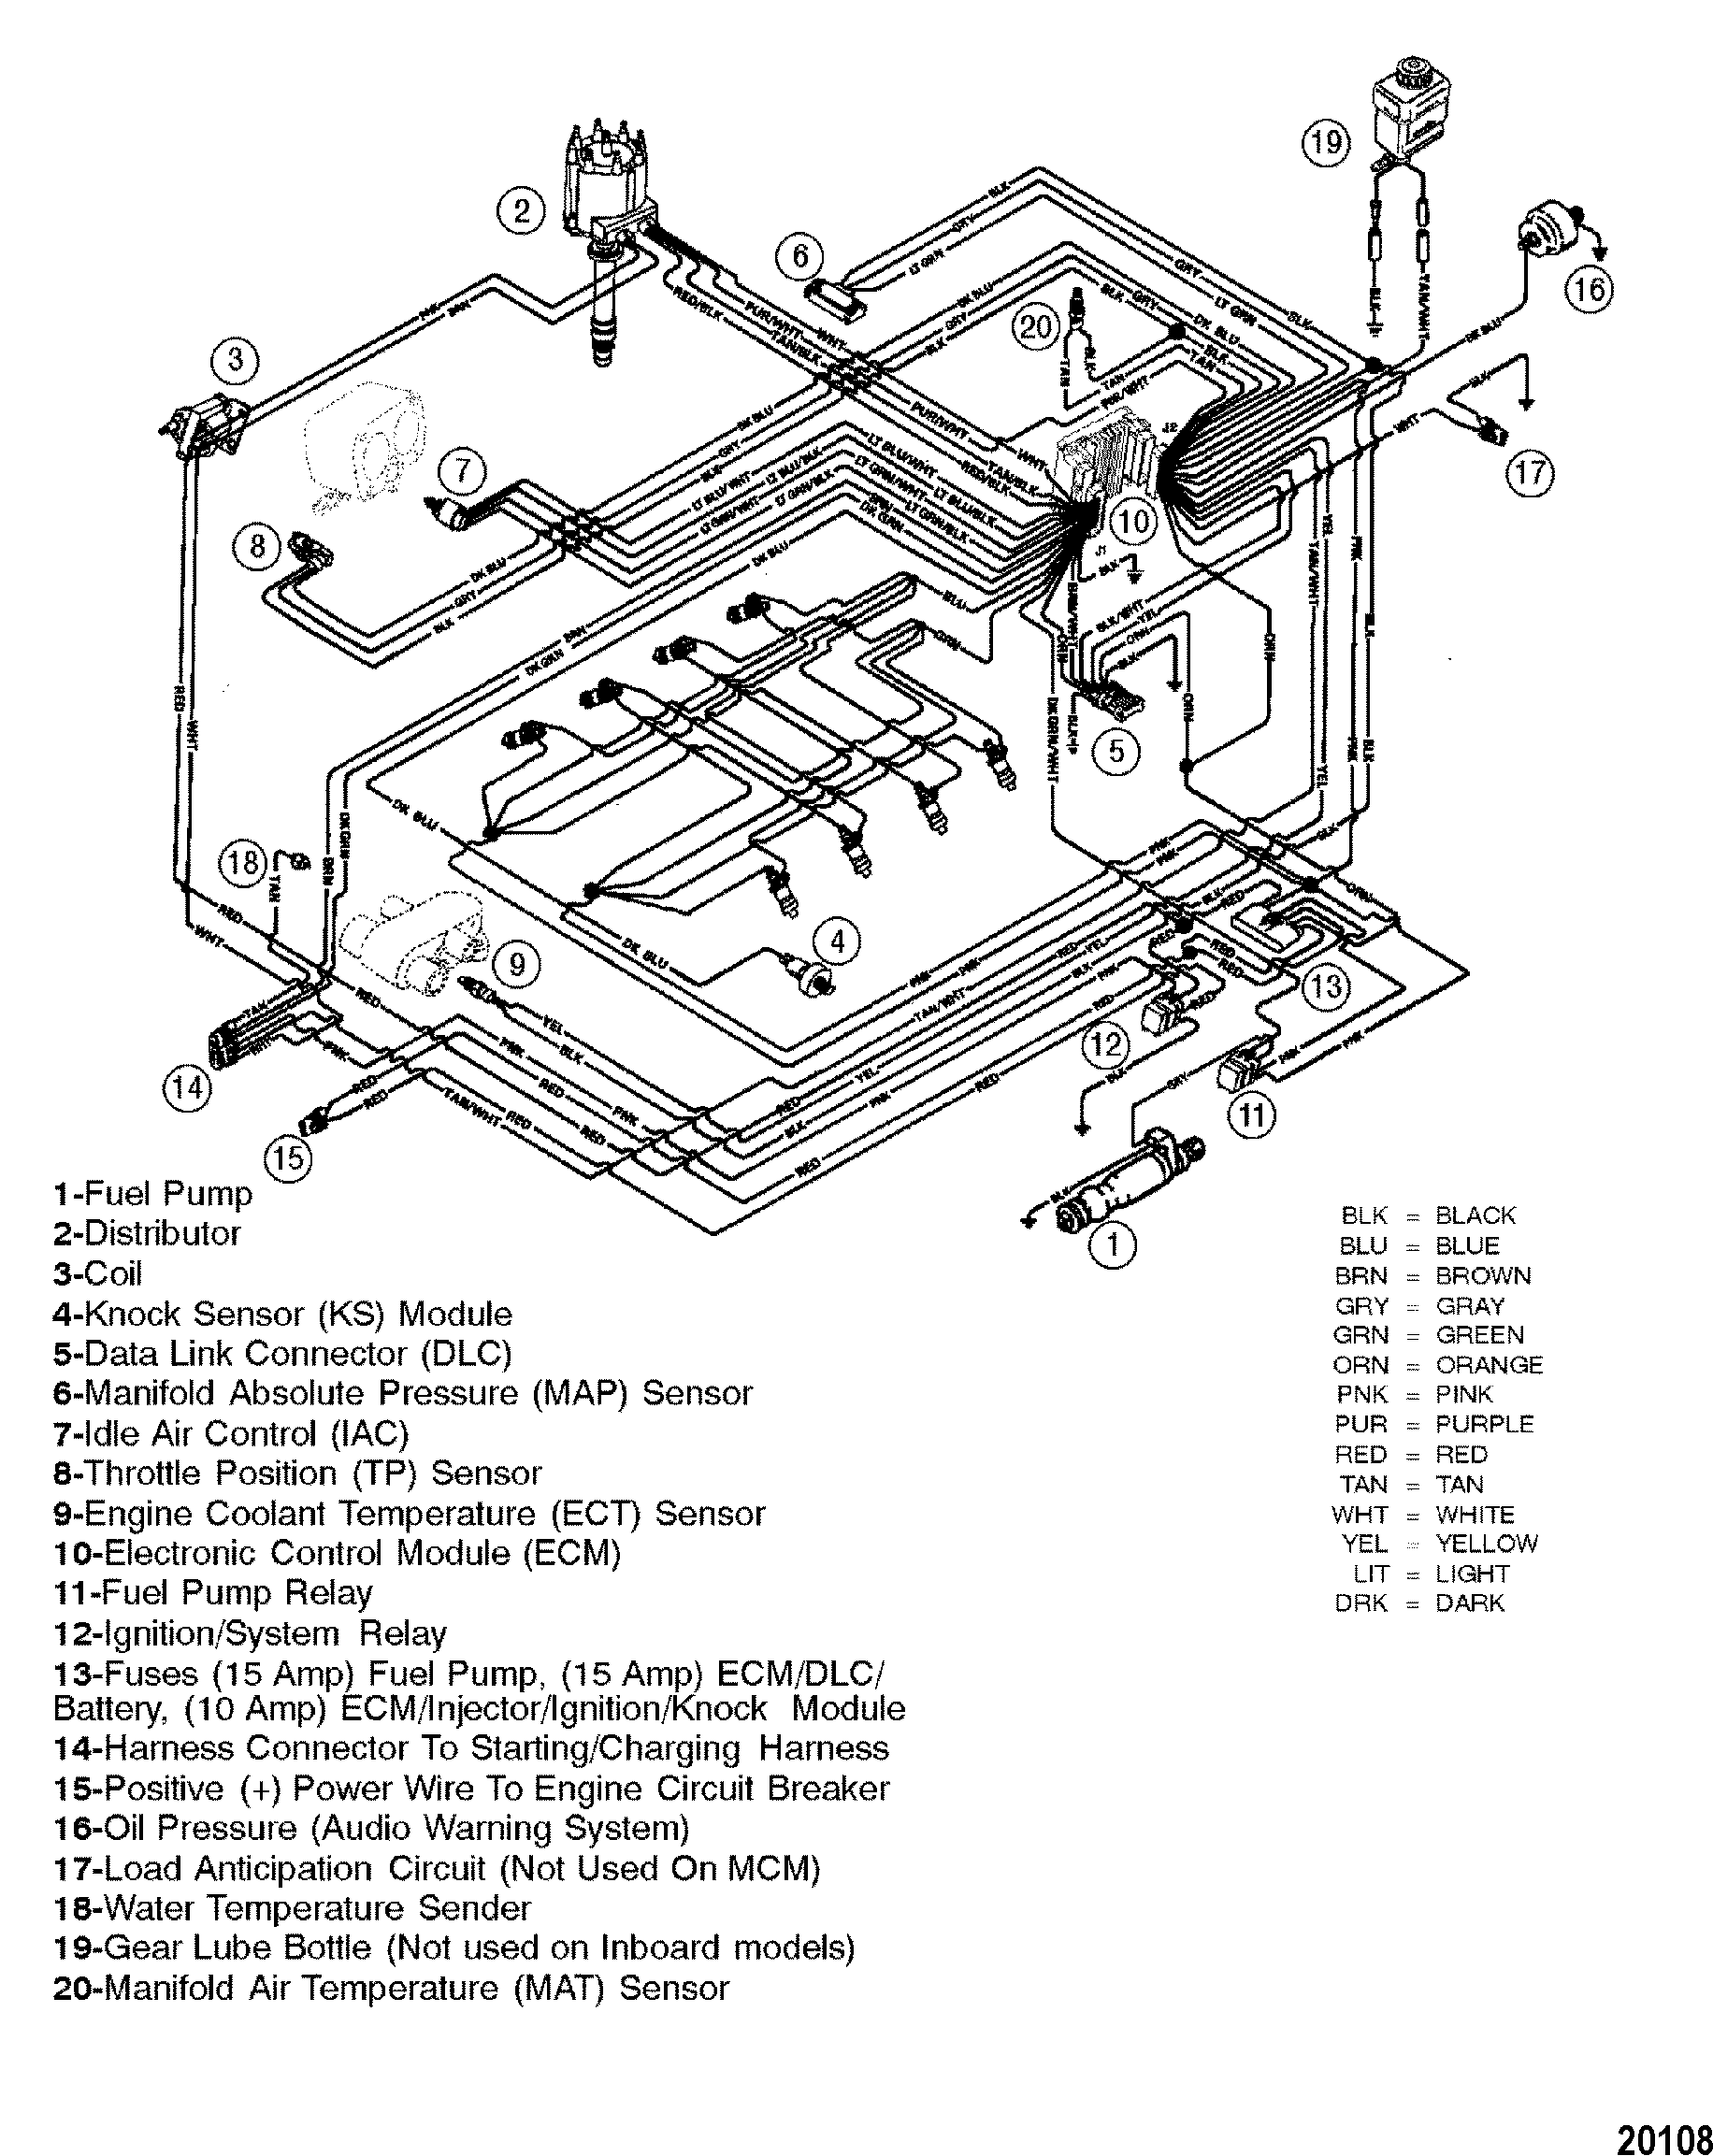 Cp Performance Wiring Harness Efi Mercury Vapor Light Diagram Section Drawing Hover Or Click To View Larger